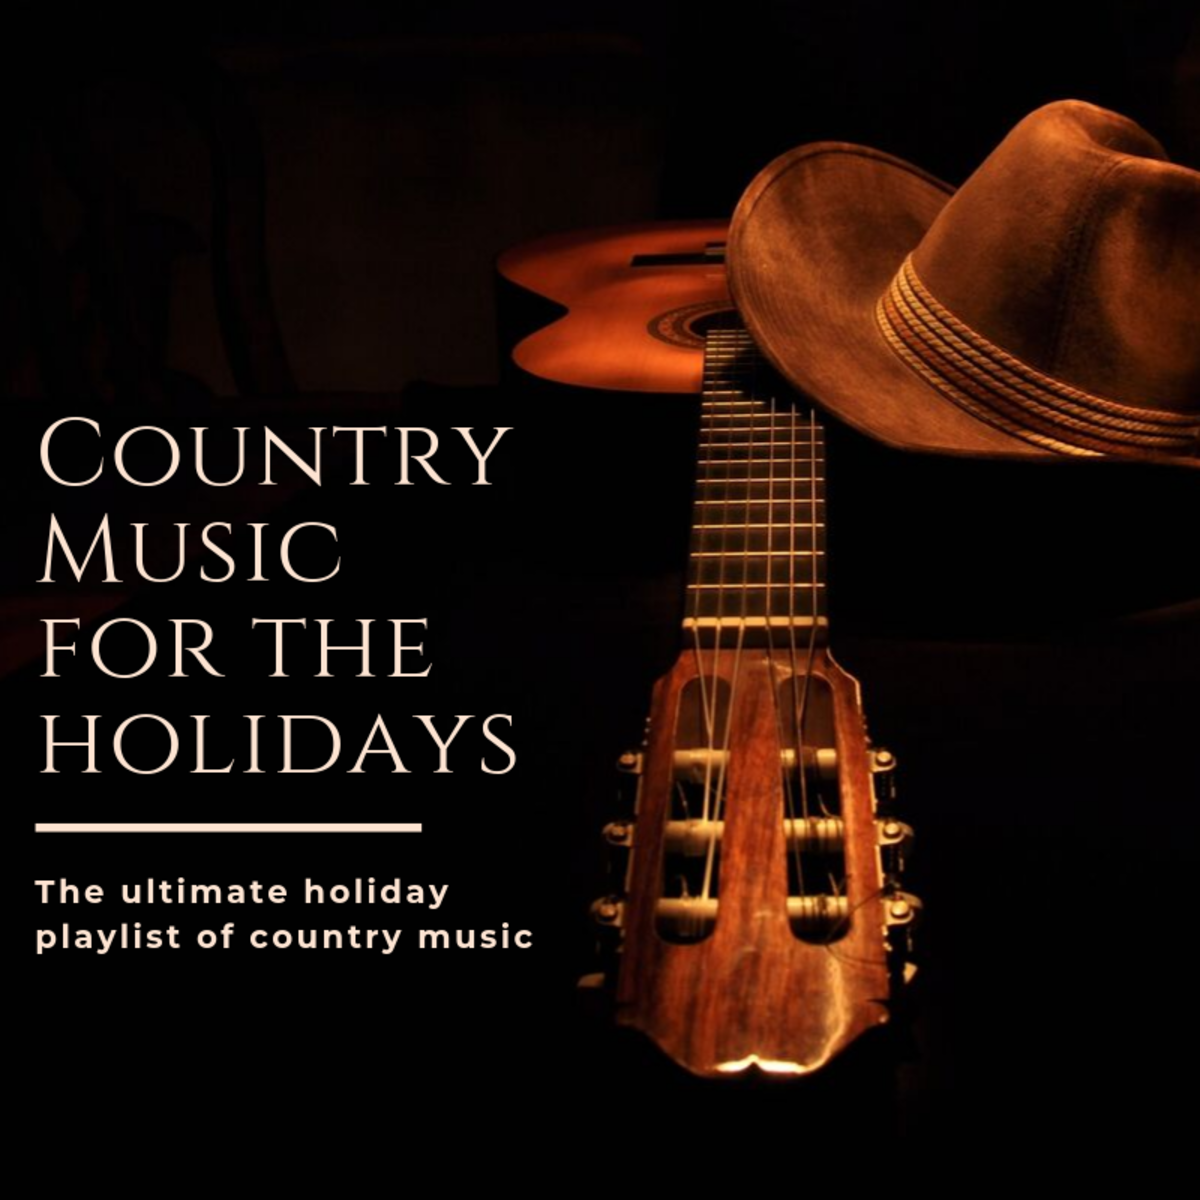 This article includes 40 of the most festive songs that country music has to offer.